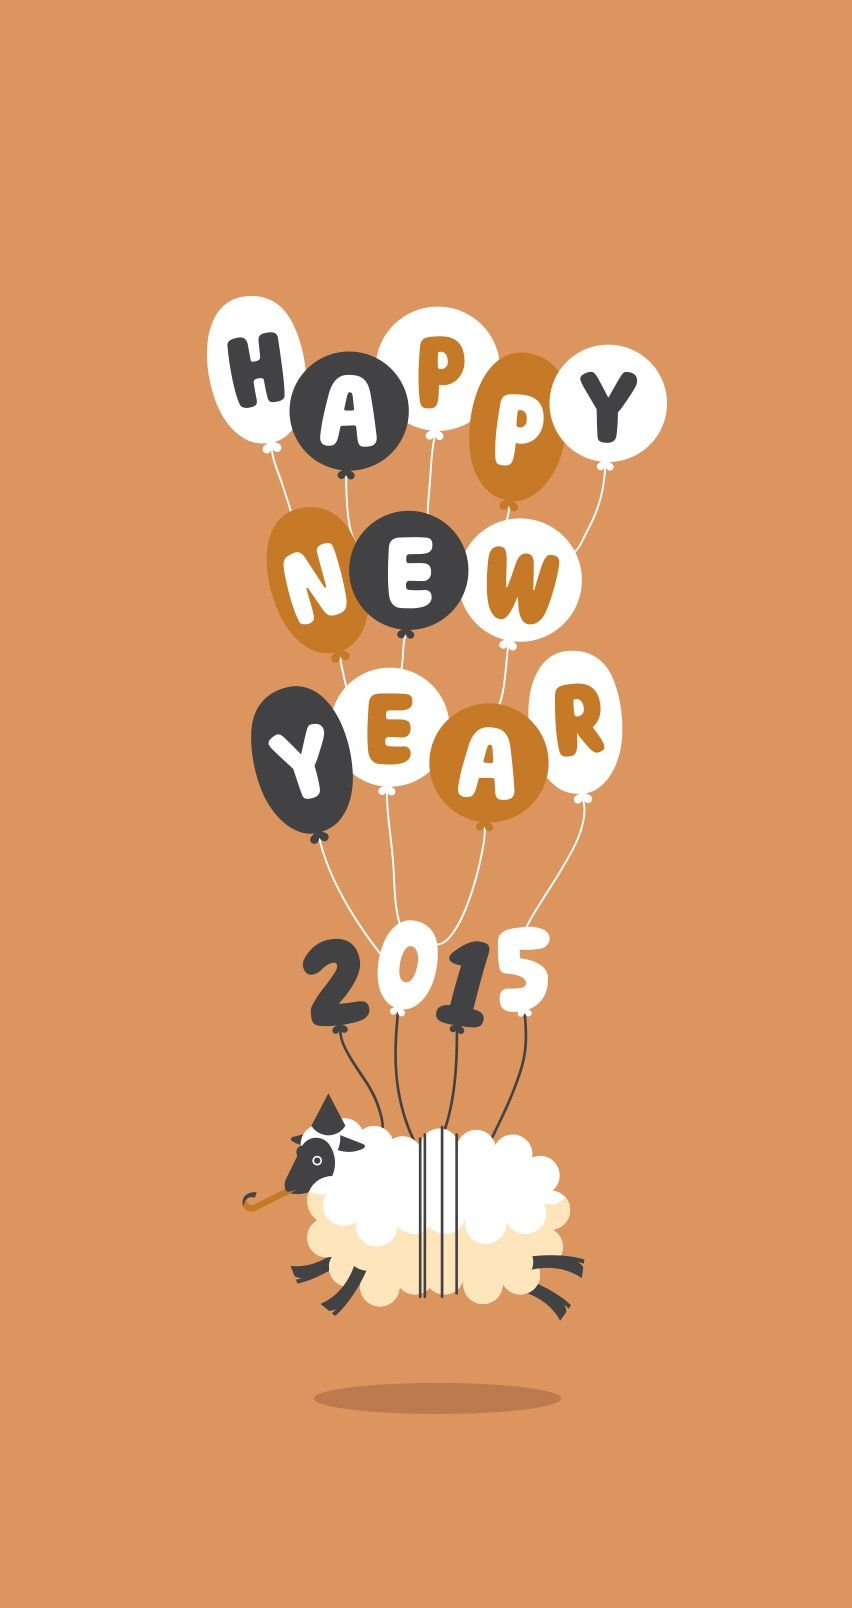 tap image for more new year 2015 iphone 6 wallpapers happy new year 2015 mobile9 iphone calendar